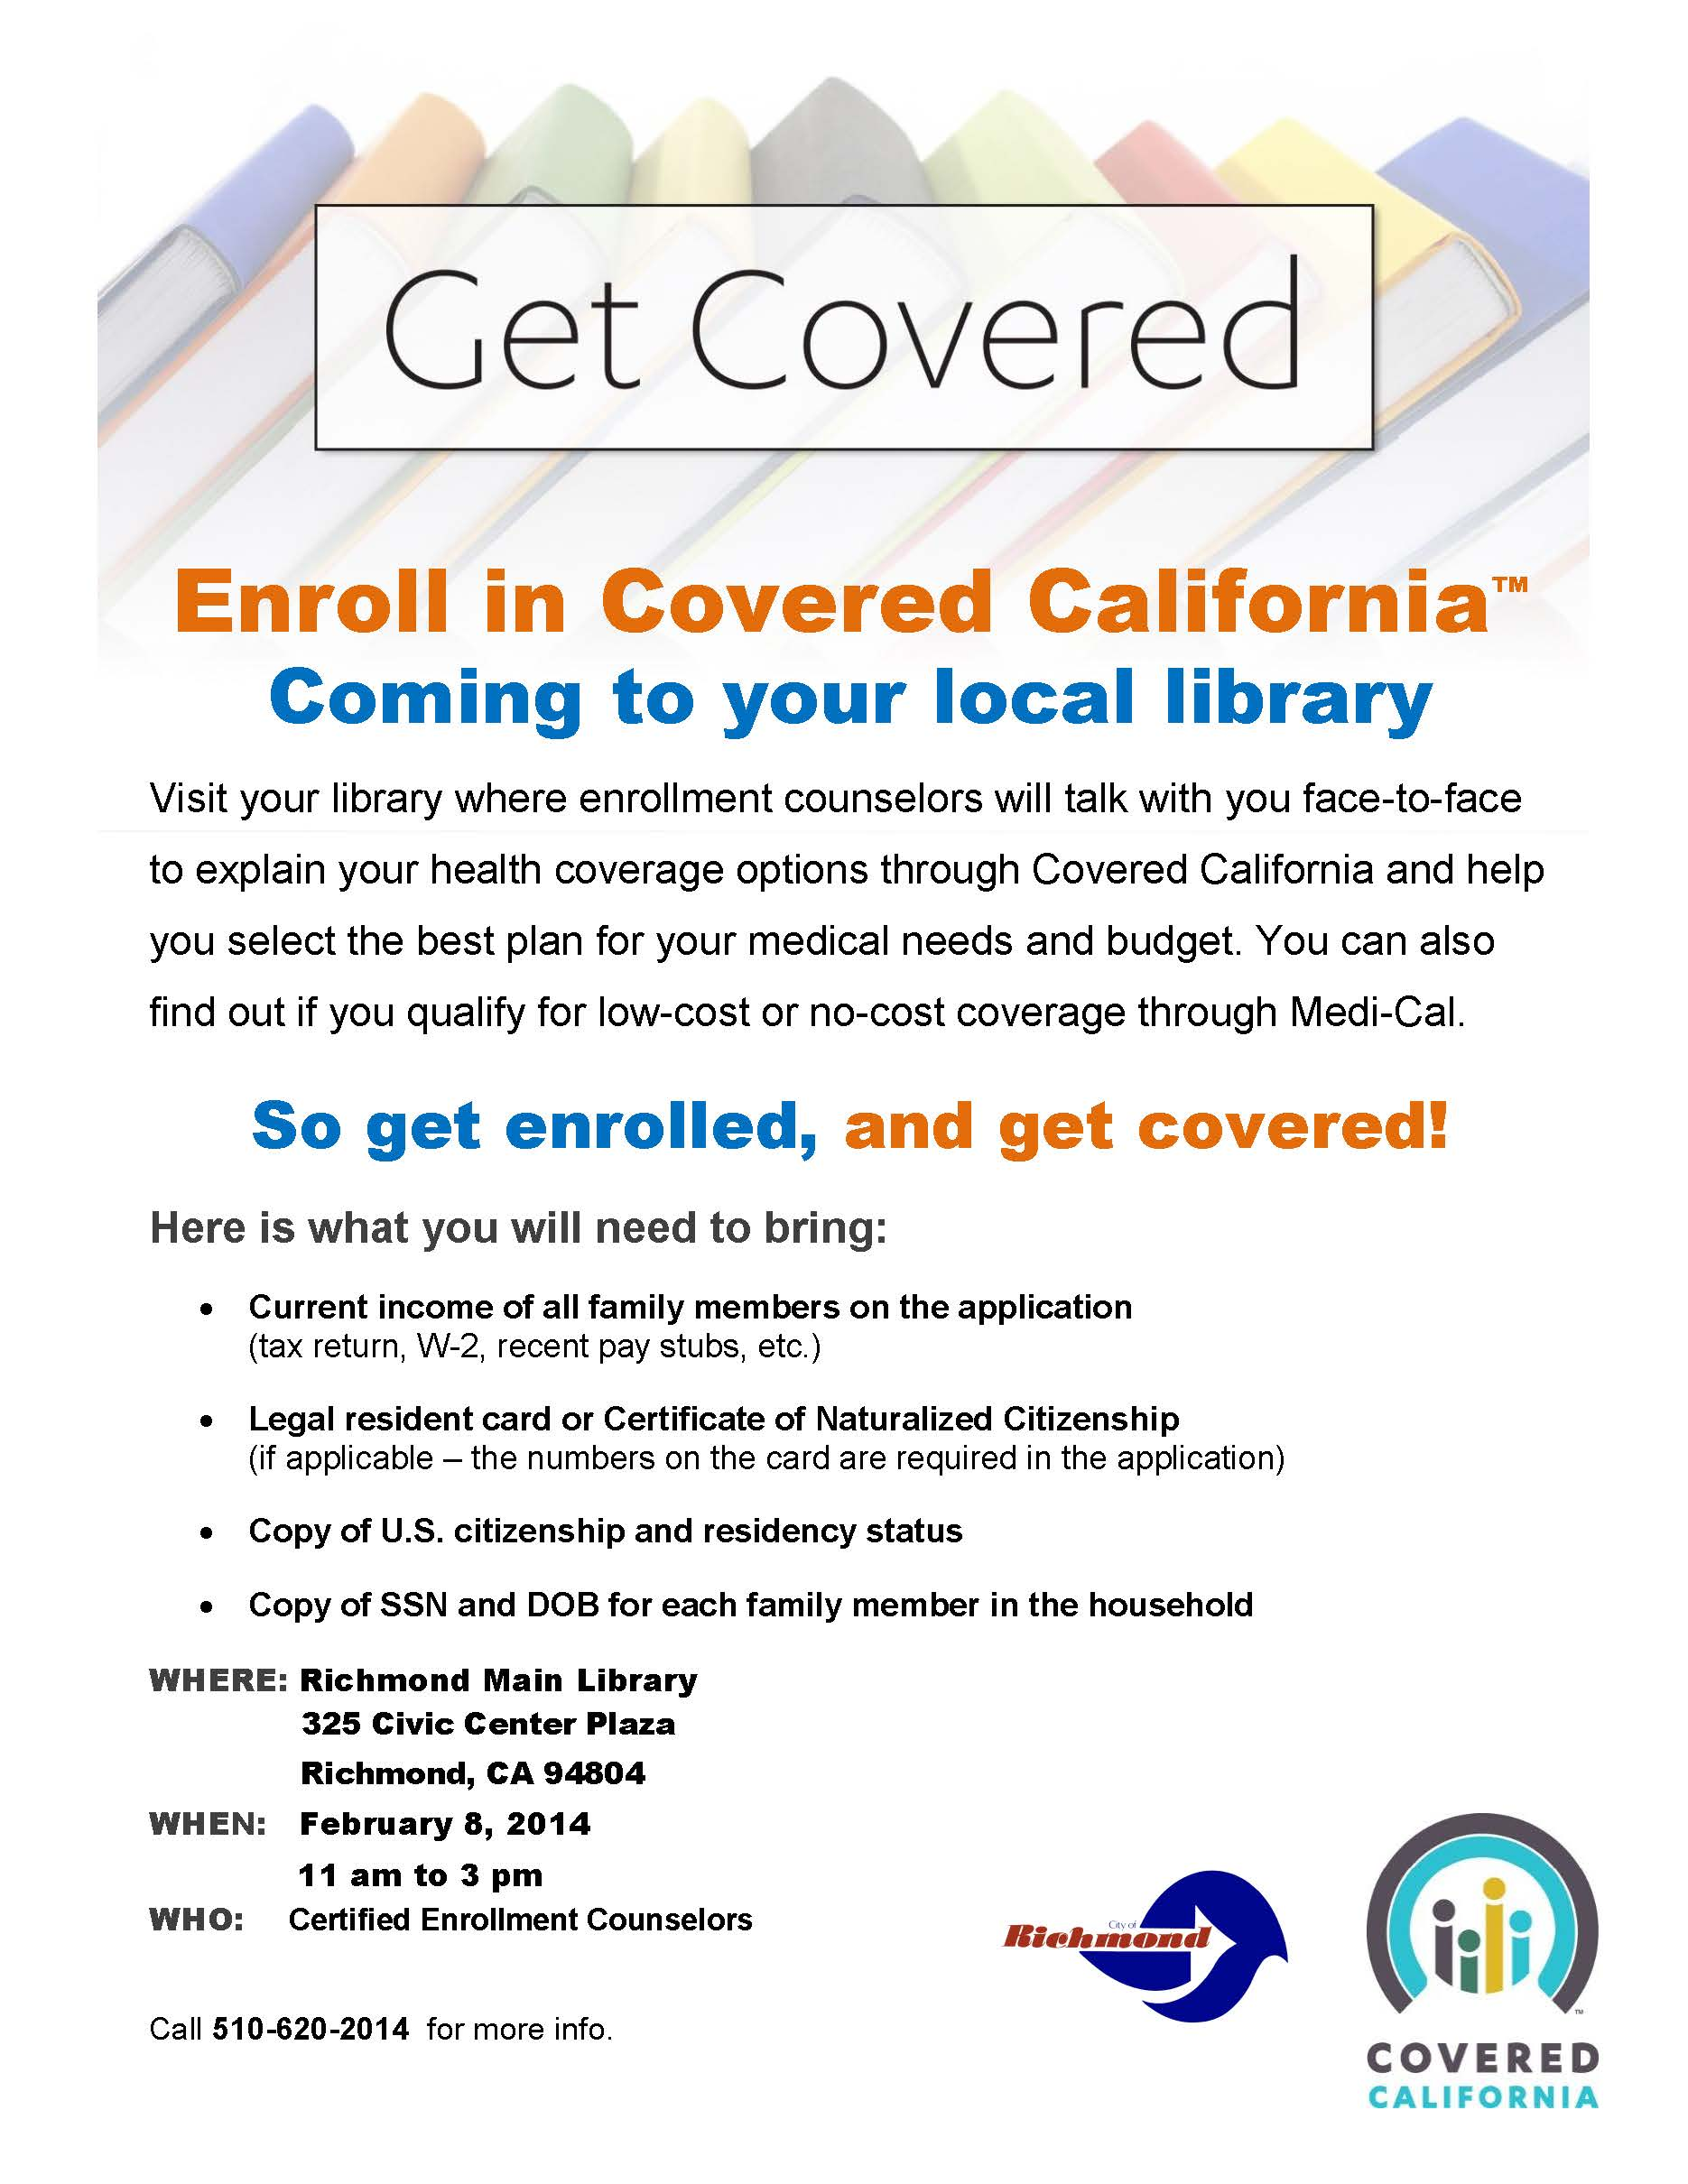 Get Covered – Enroll in Covered California – Richmond Main Library